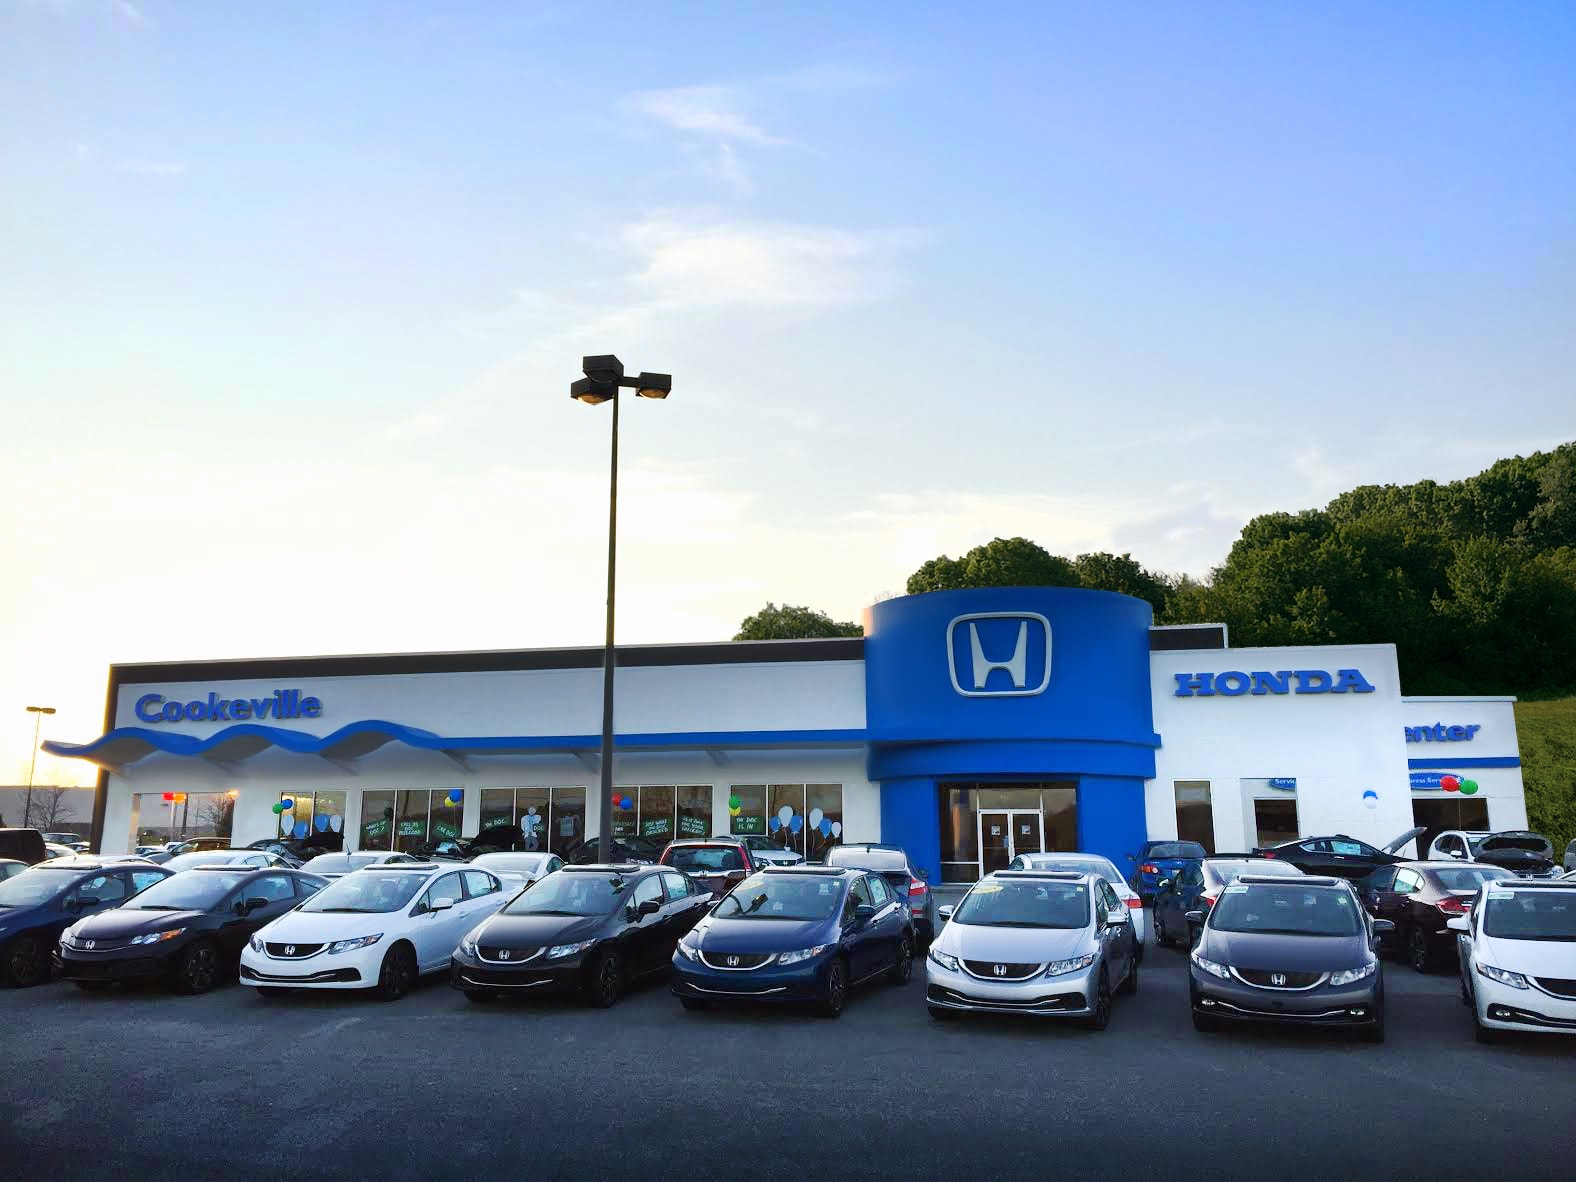 Used car liquidation sale near mcminnville tn cookeville honda reserve your deal here publicscrutiny Gallery